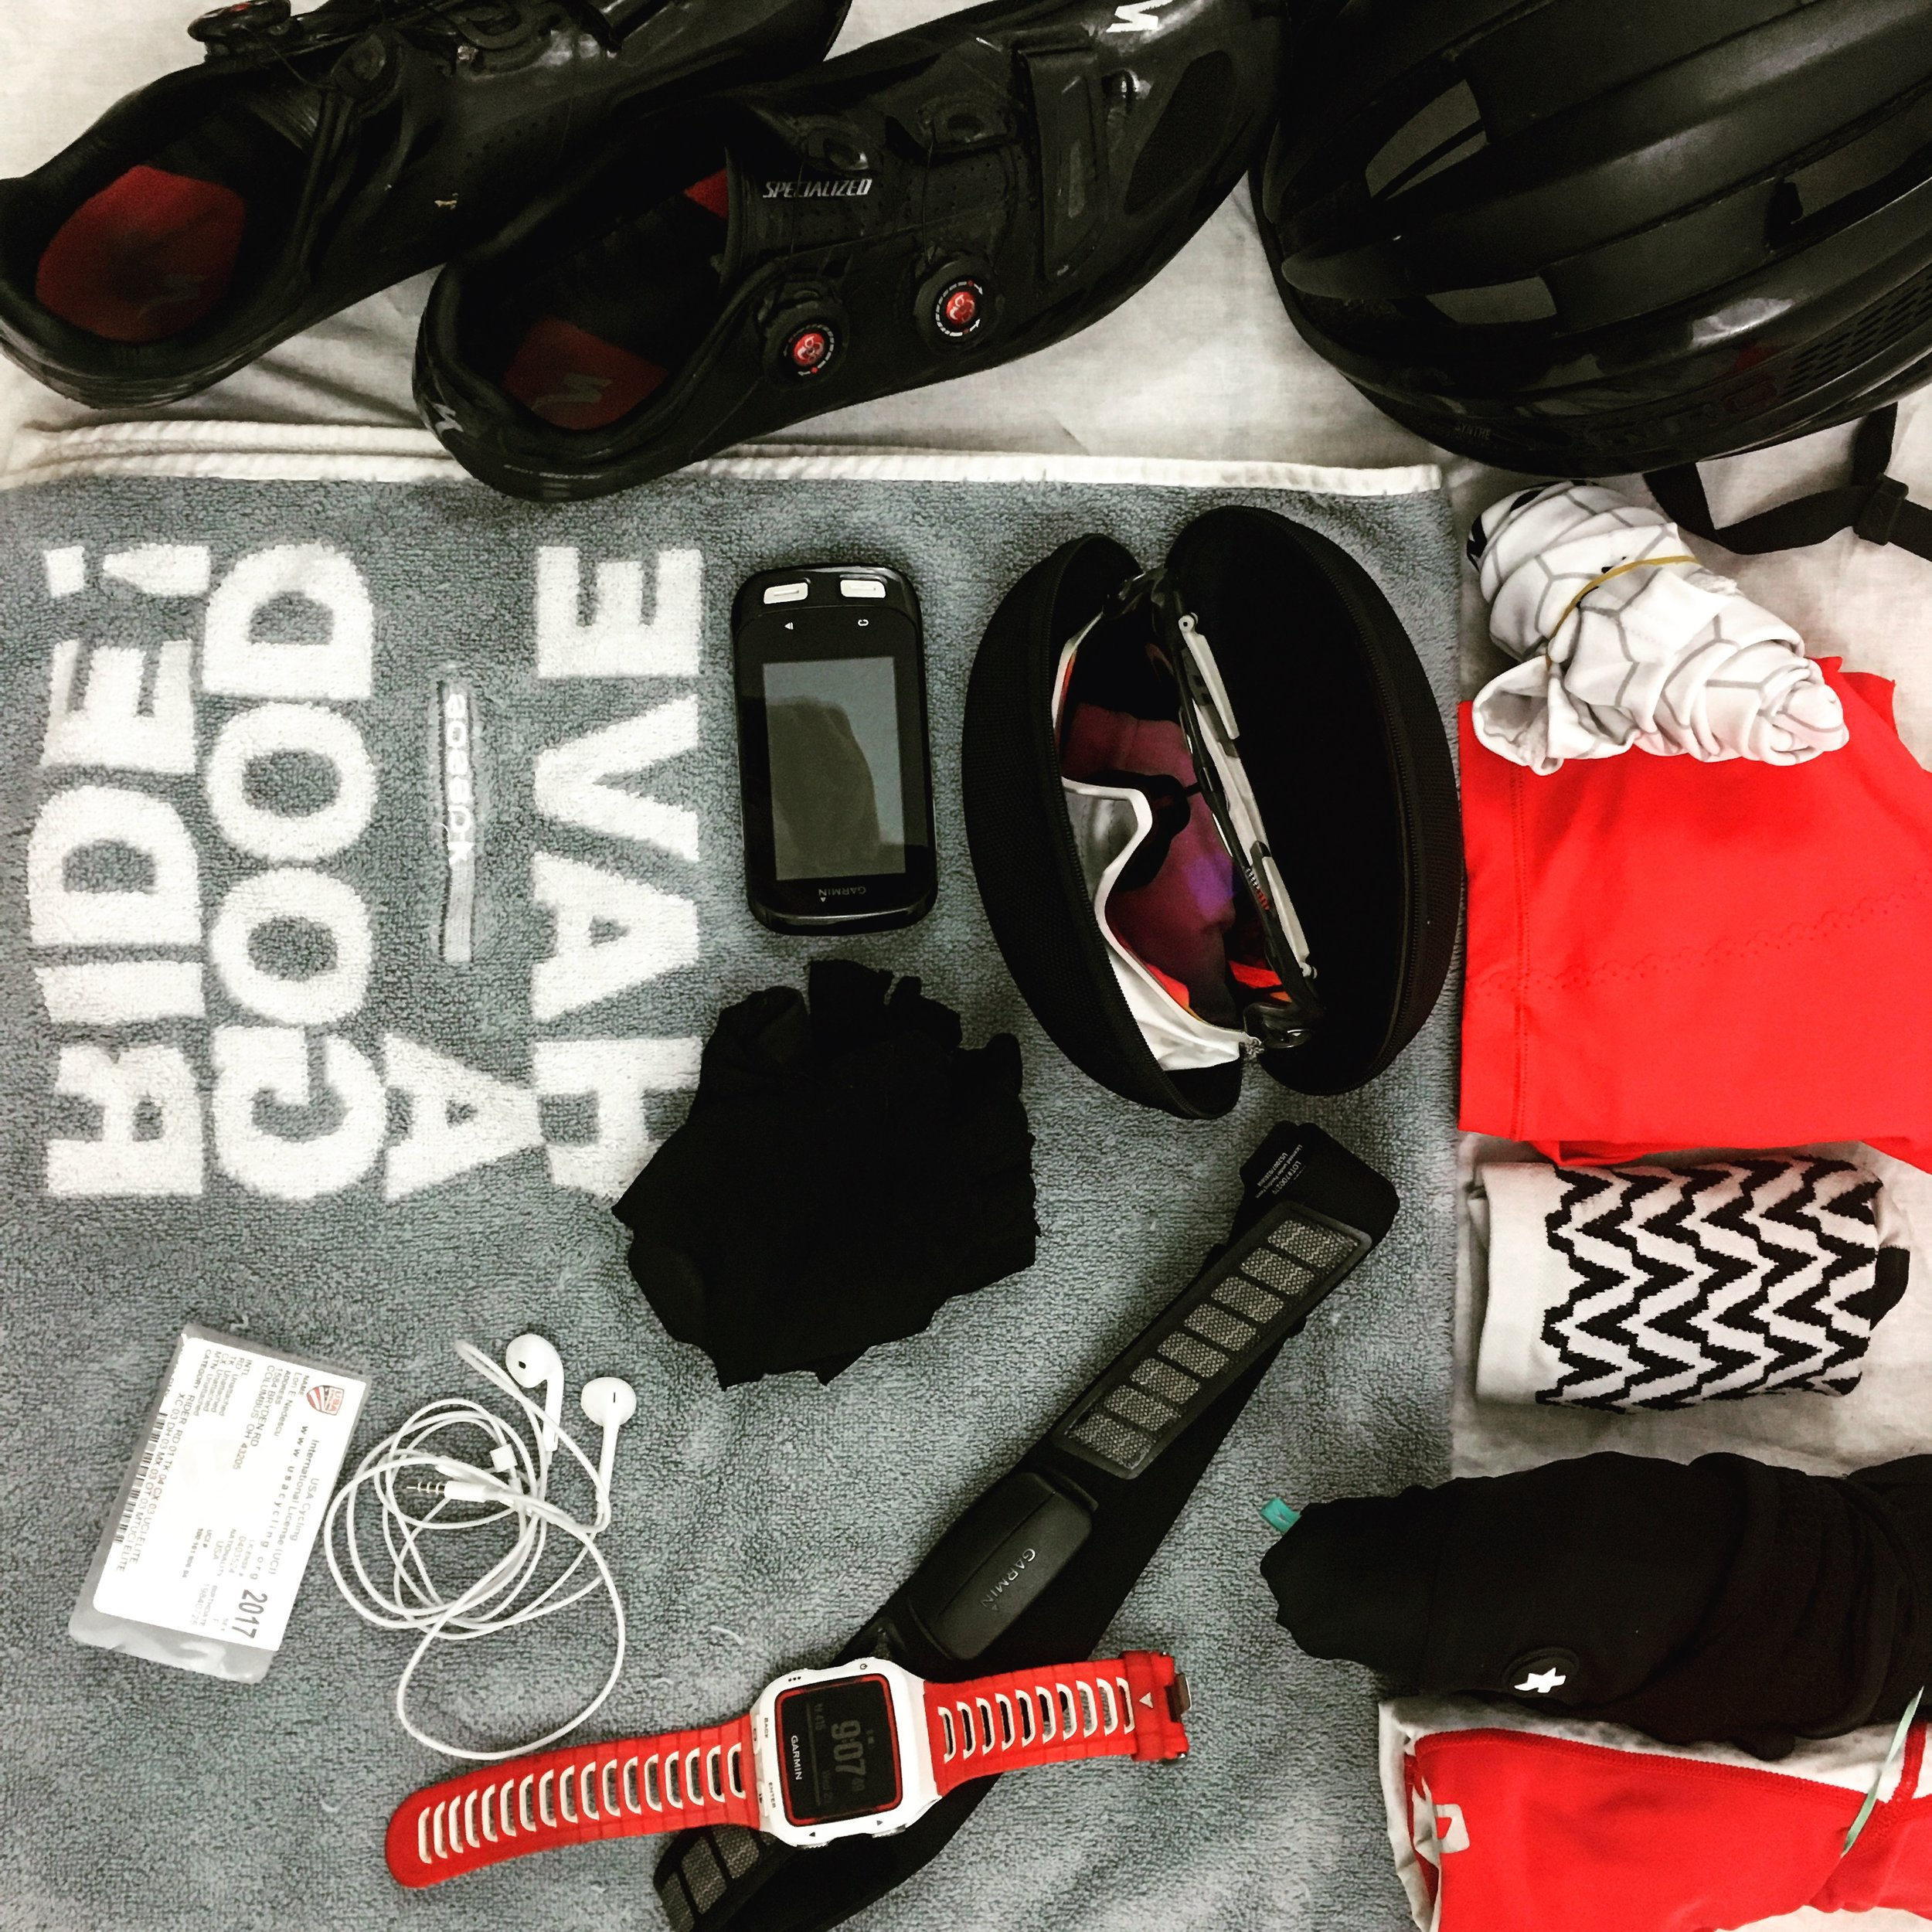 Go into race day with a clean, focused race bag!